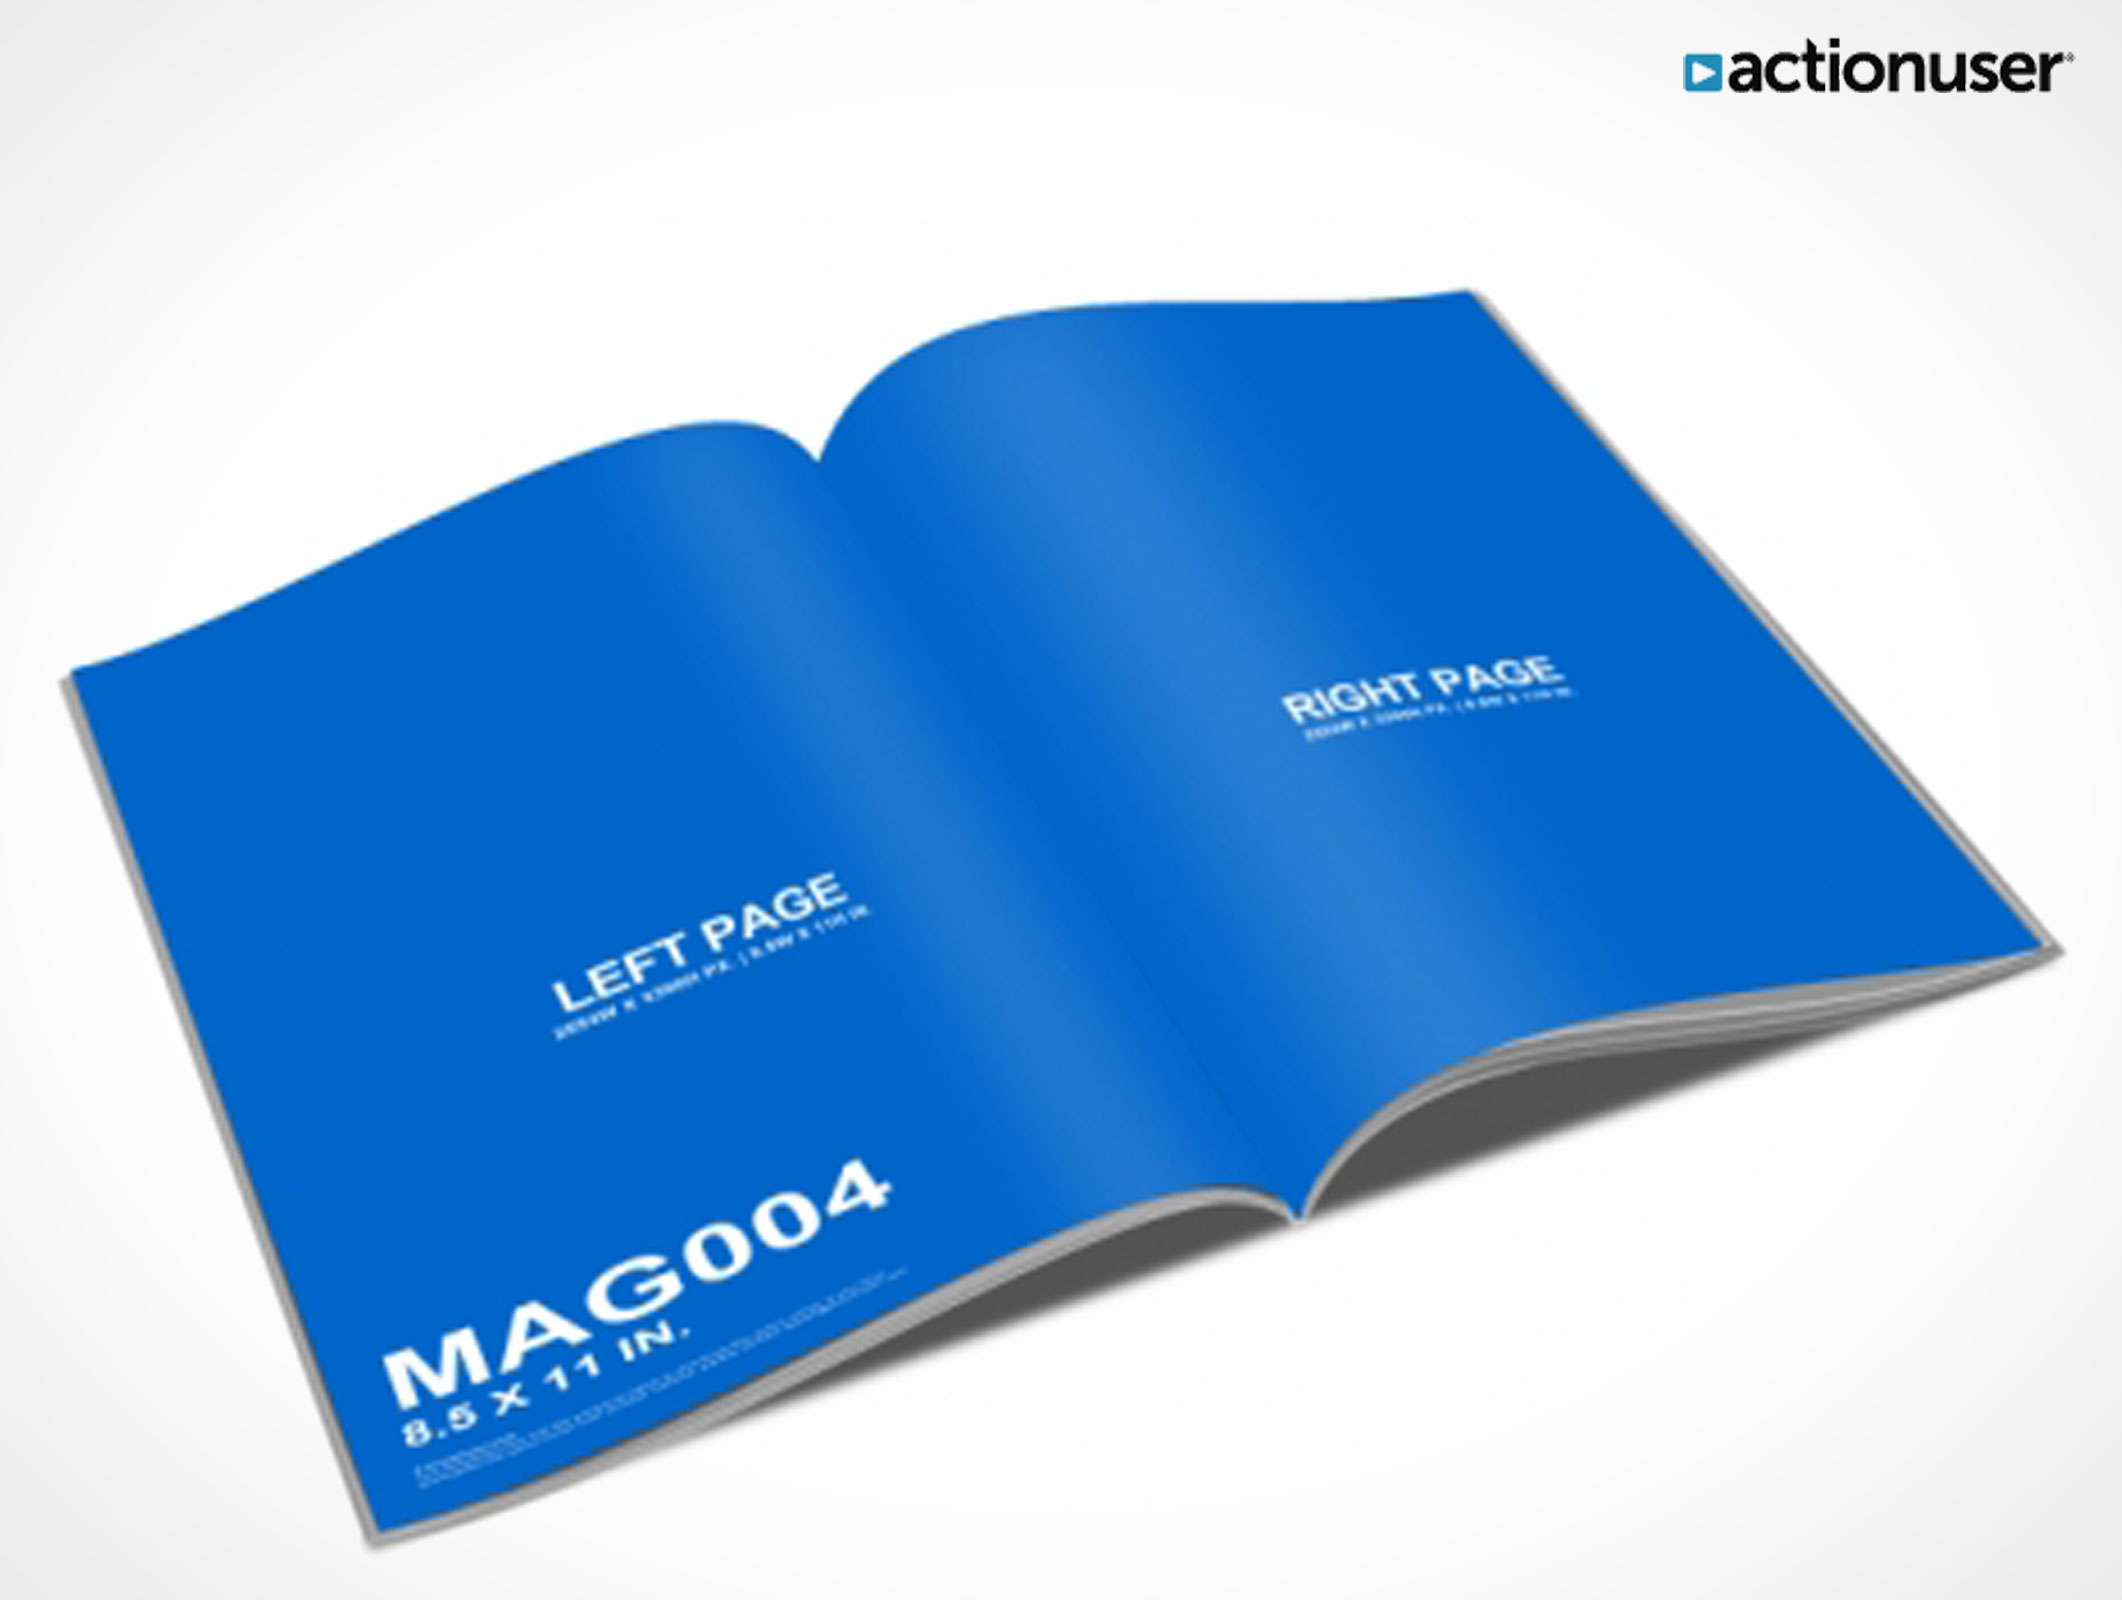 magazine cover page template psd - psd mockup templates pixeden psdgraphics actionuser